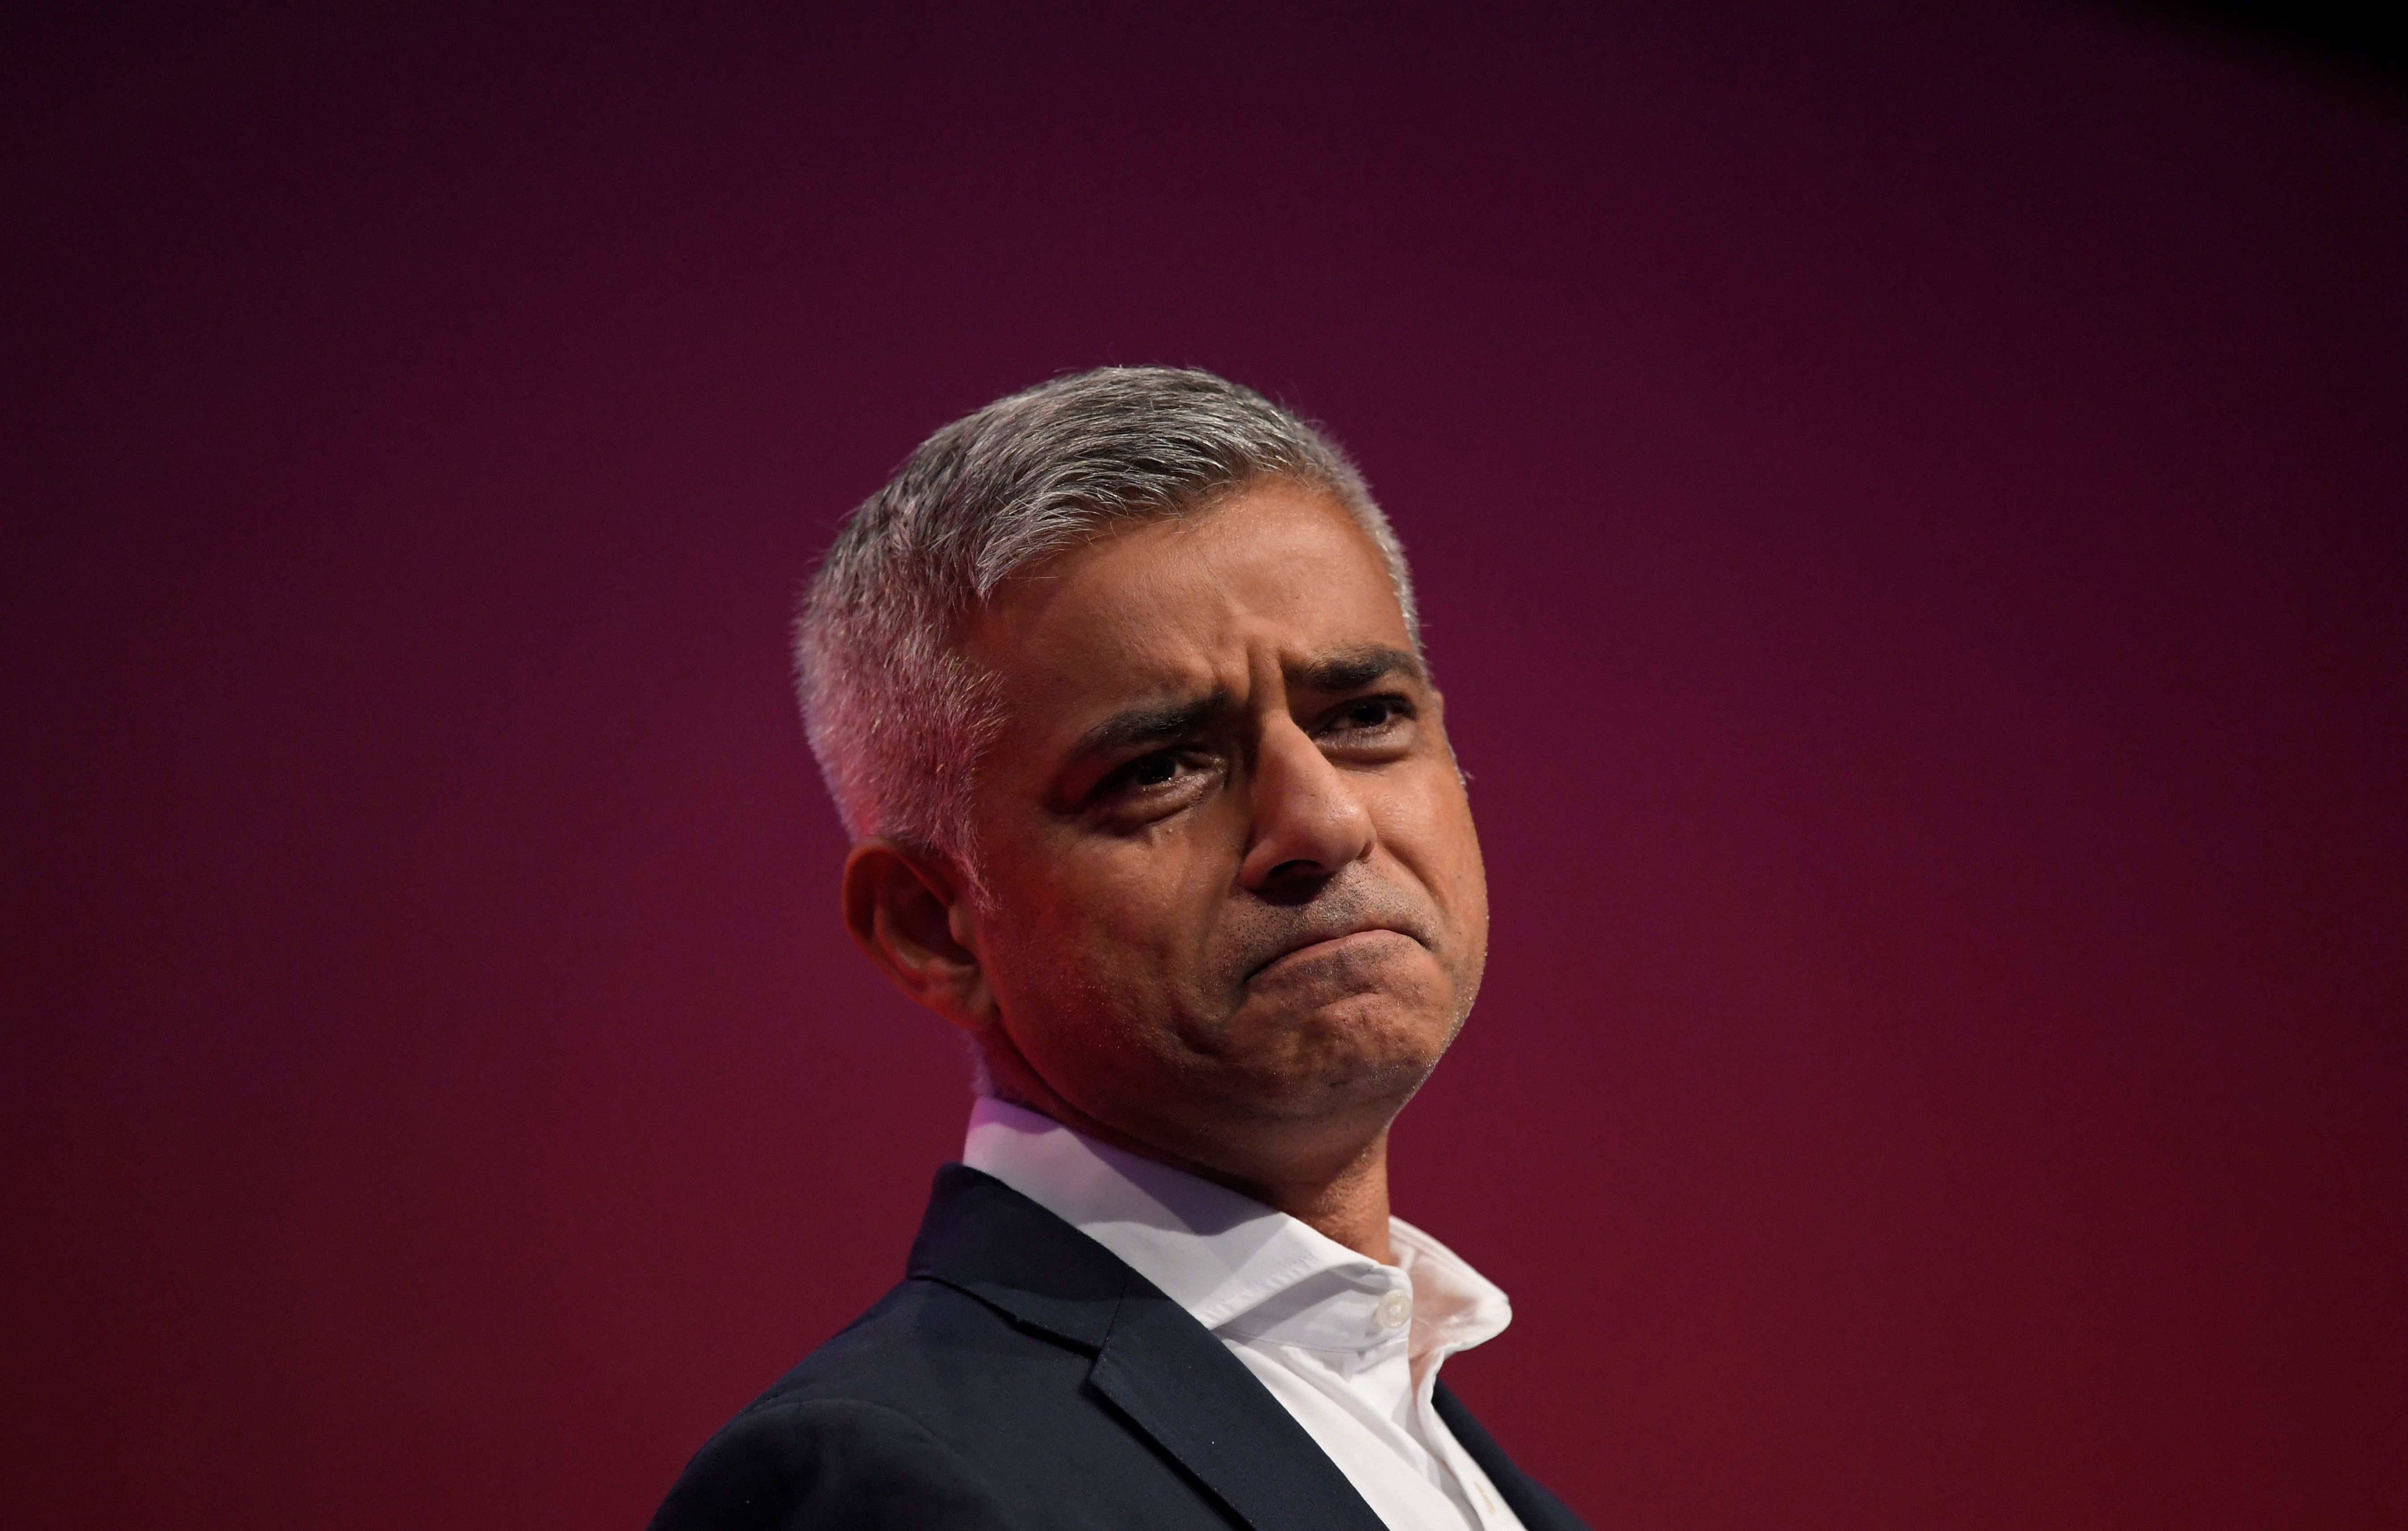 The mayor of London, Sadiq Khan, is pushing for a second Brexit